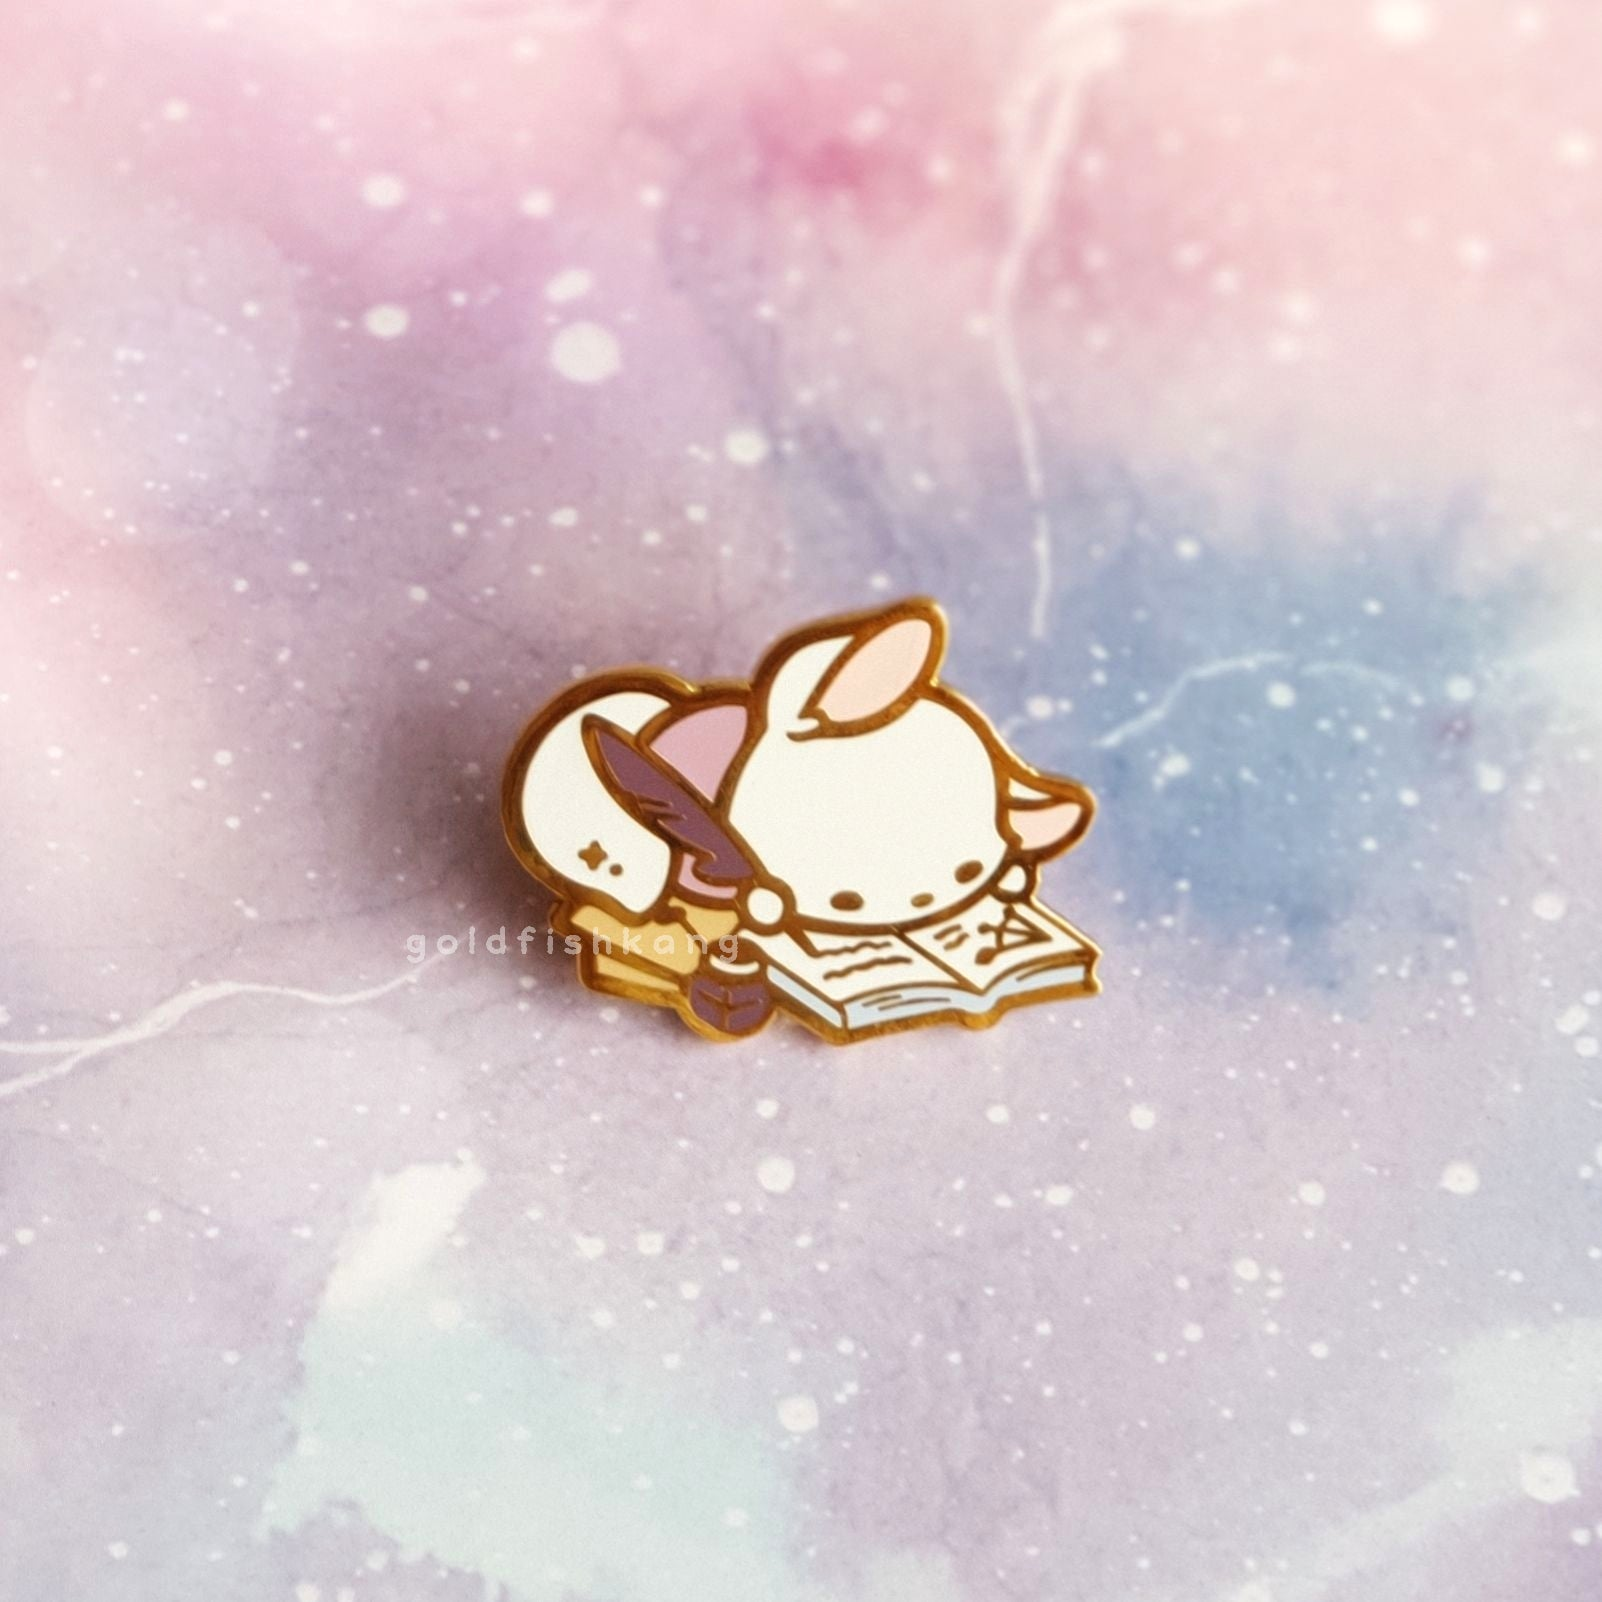 Reynard Manor Pin: Luna - Goldfishkang